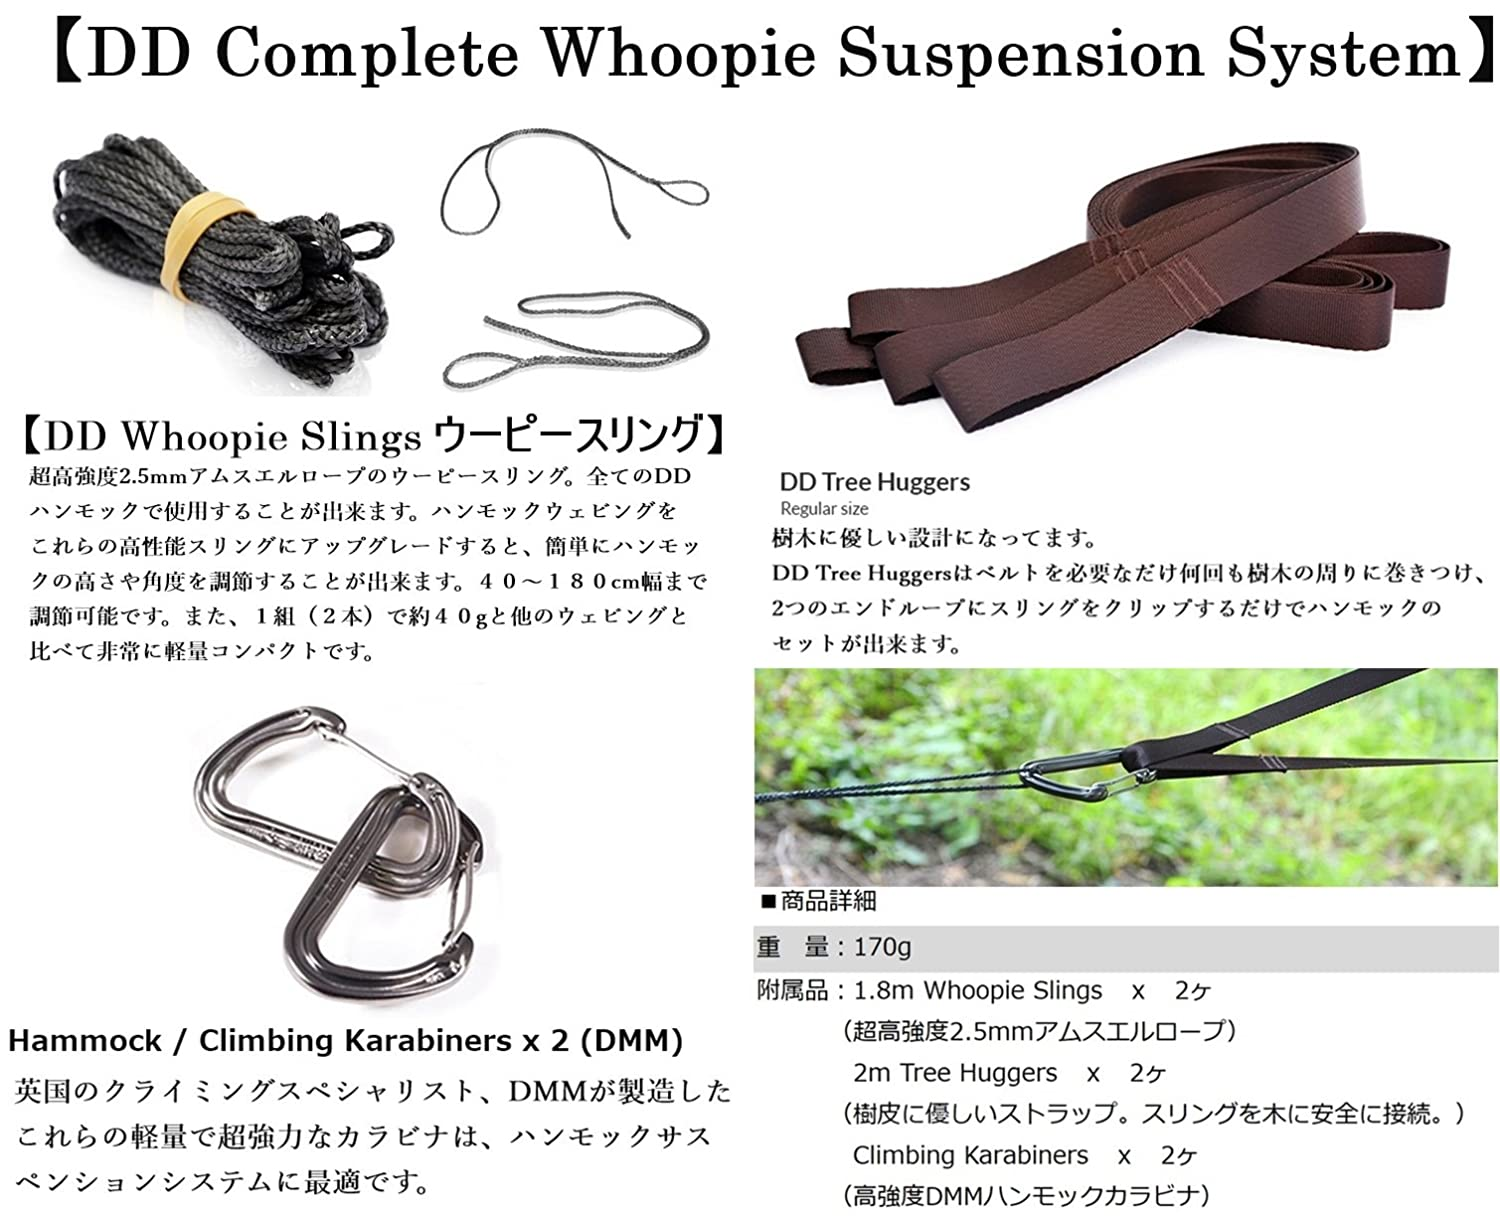 DD Complete Whoopie Suspension System